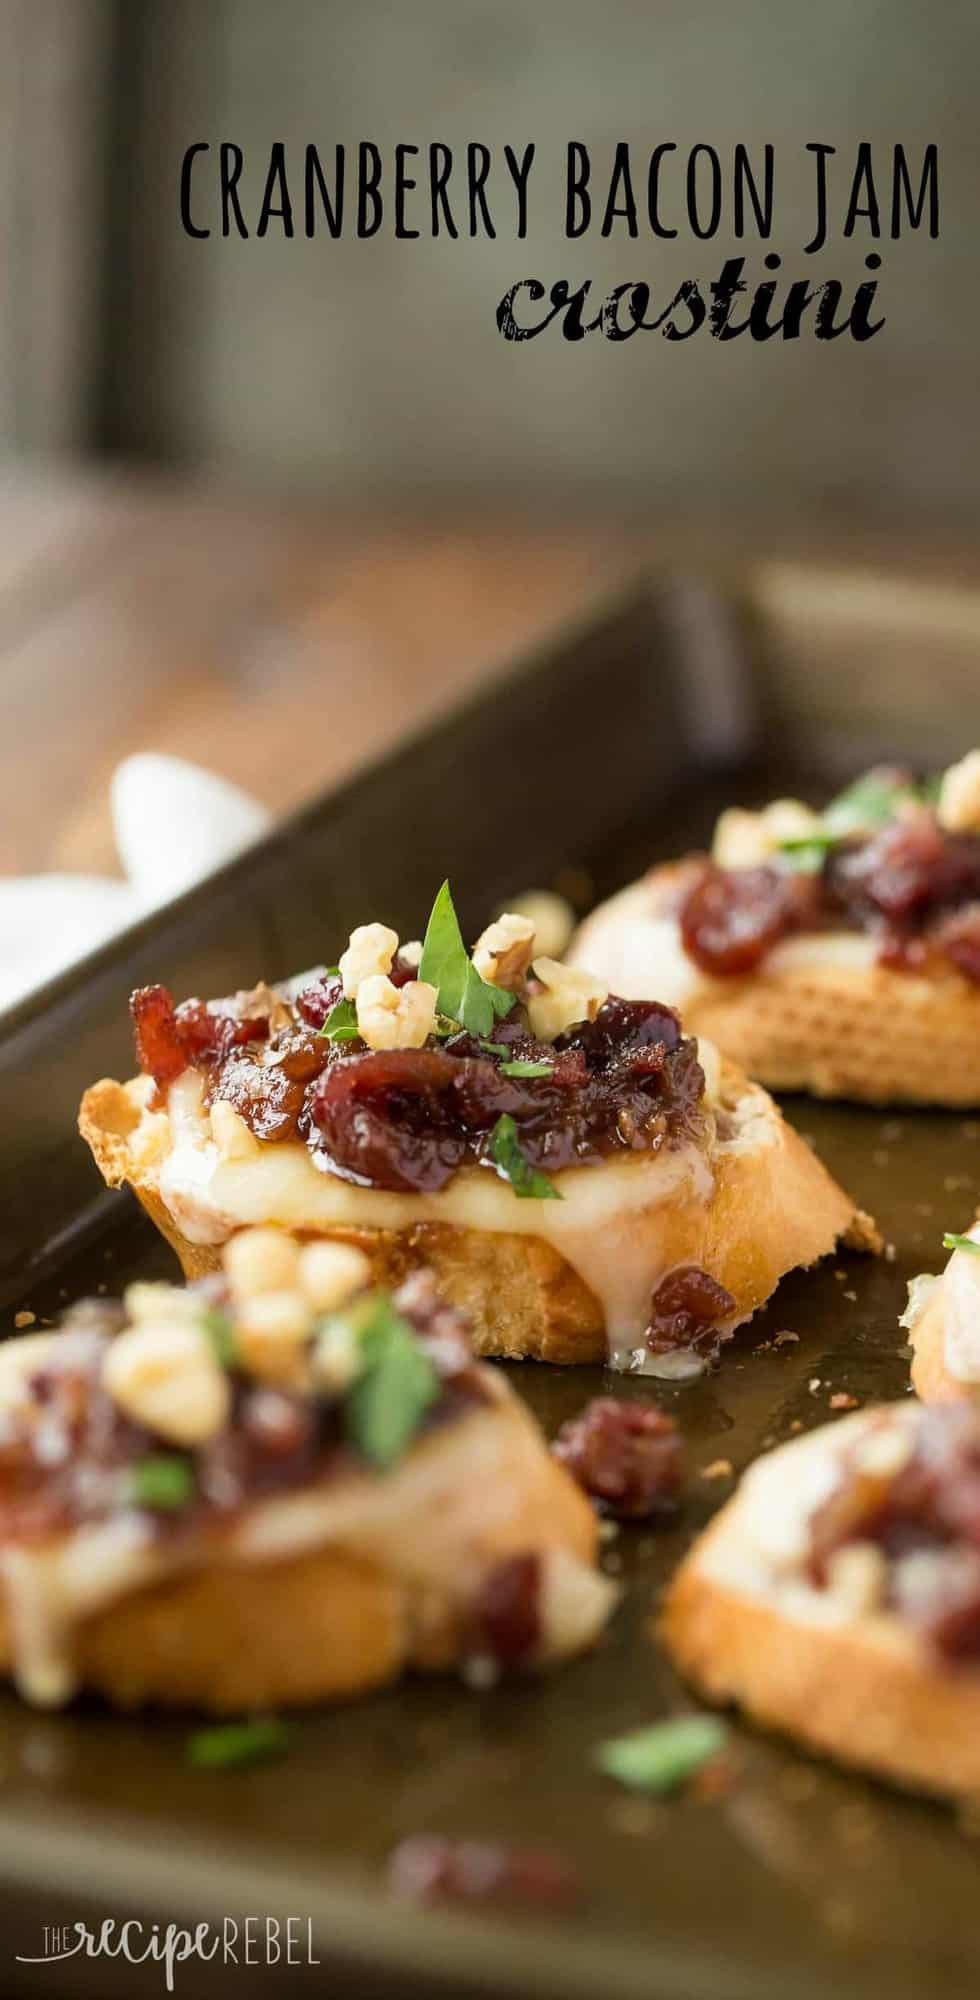 cranberry bacon jam crostini on a sliced baguette with walnuts and parsley lined up on a sheet pan